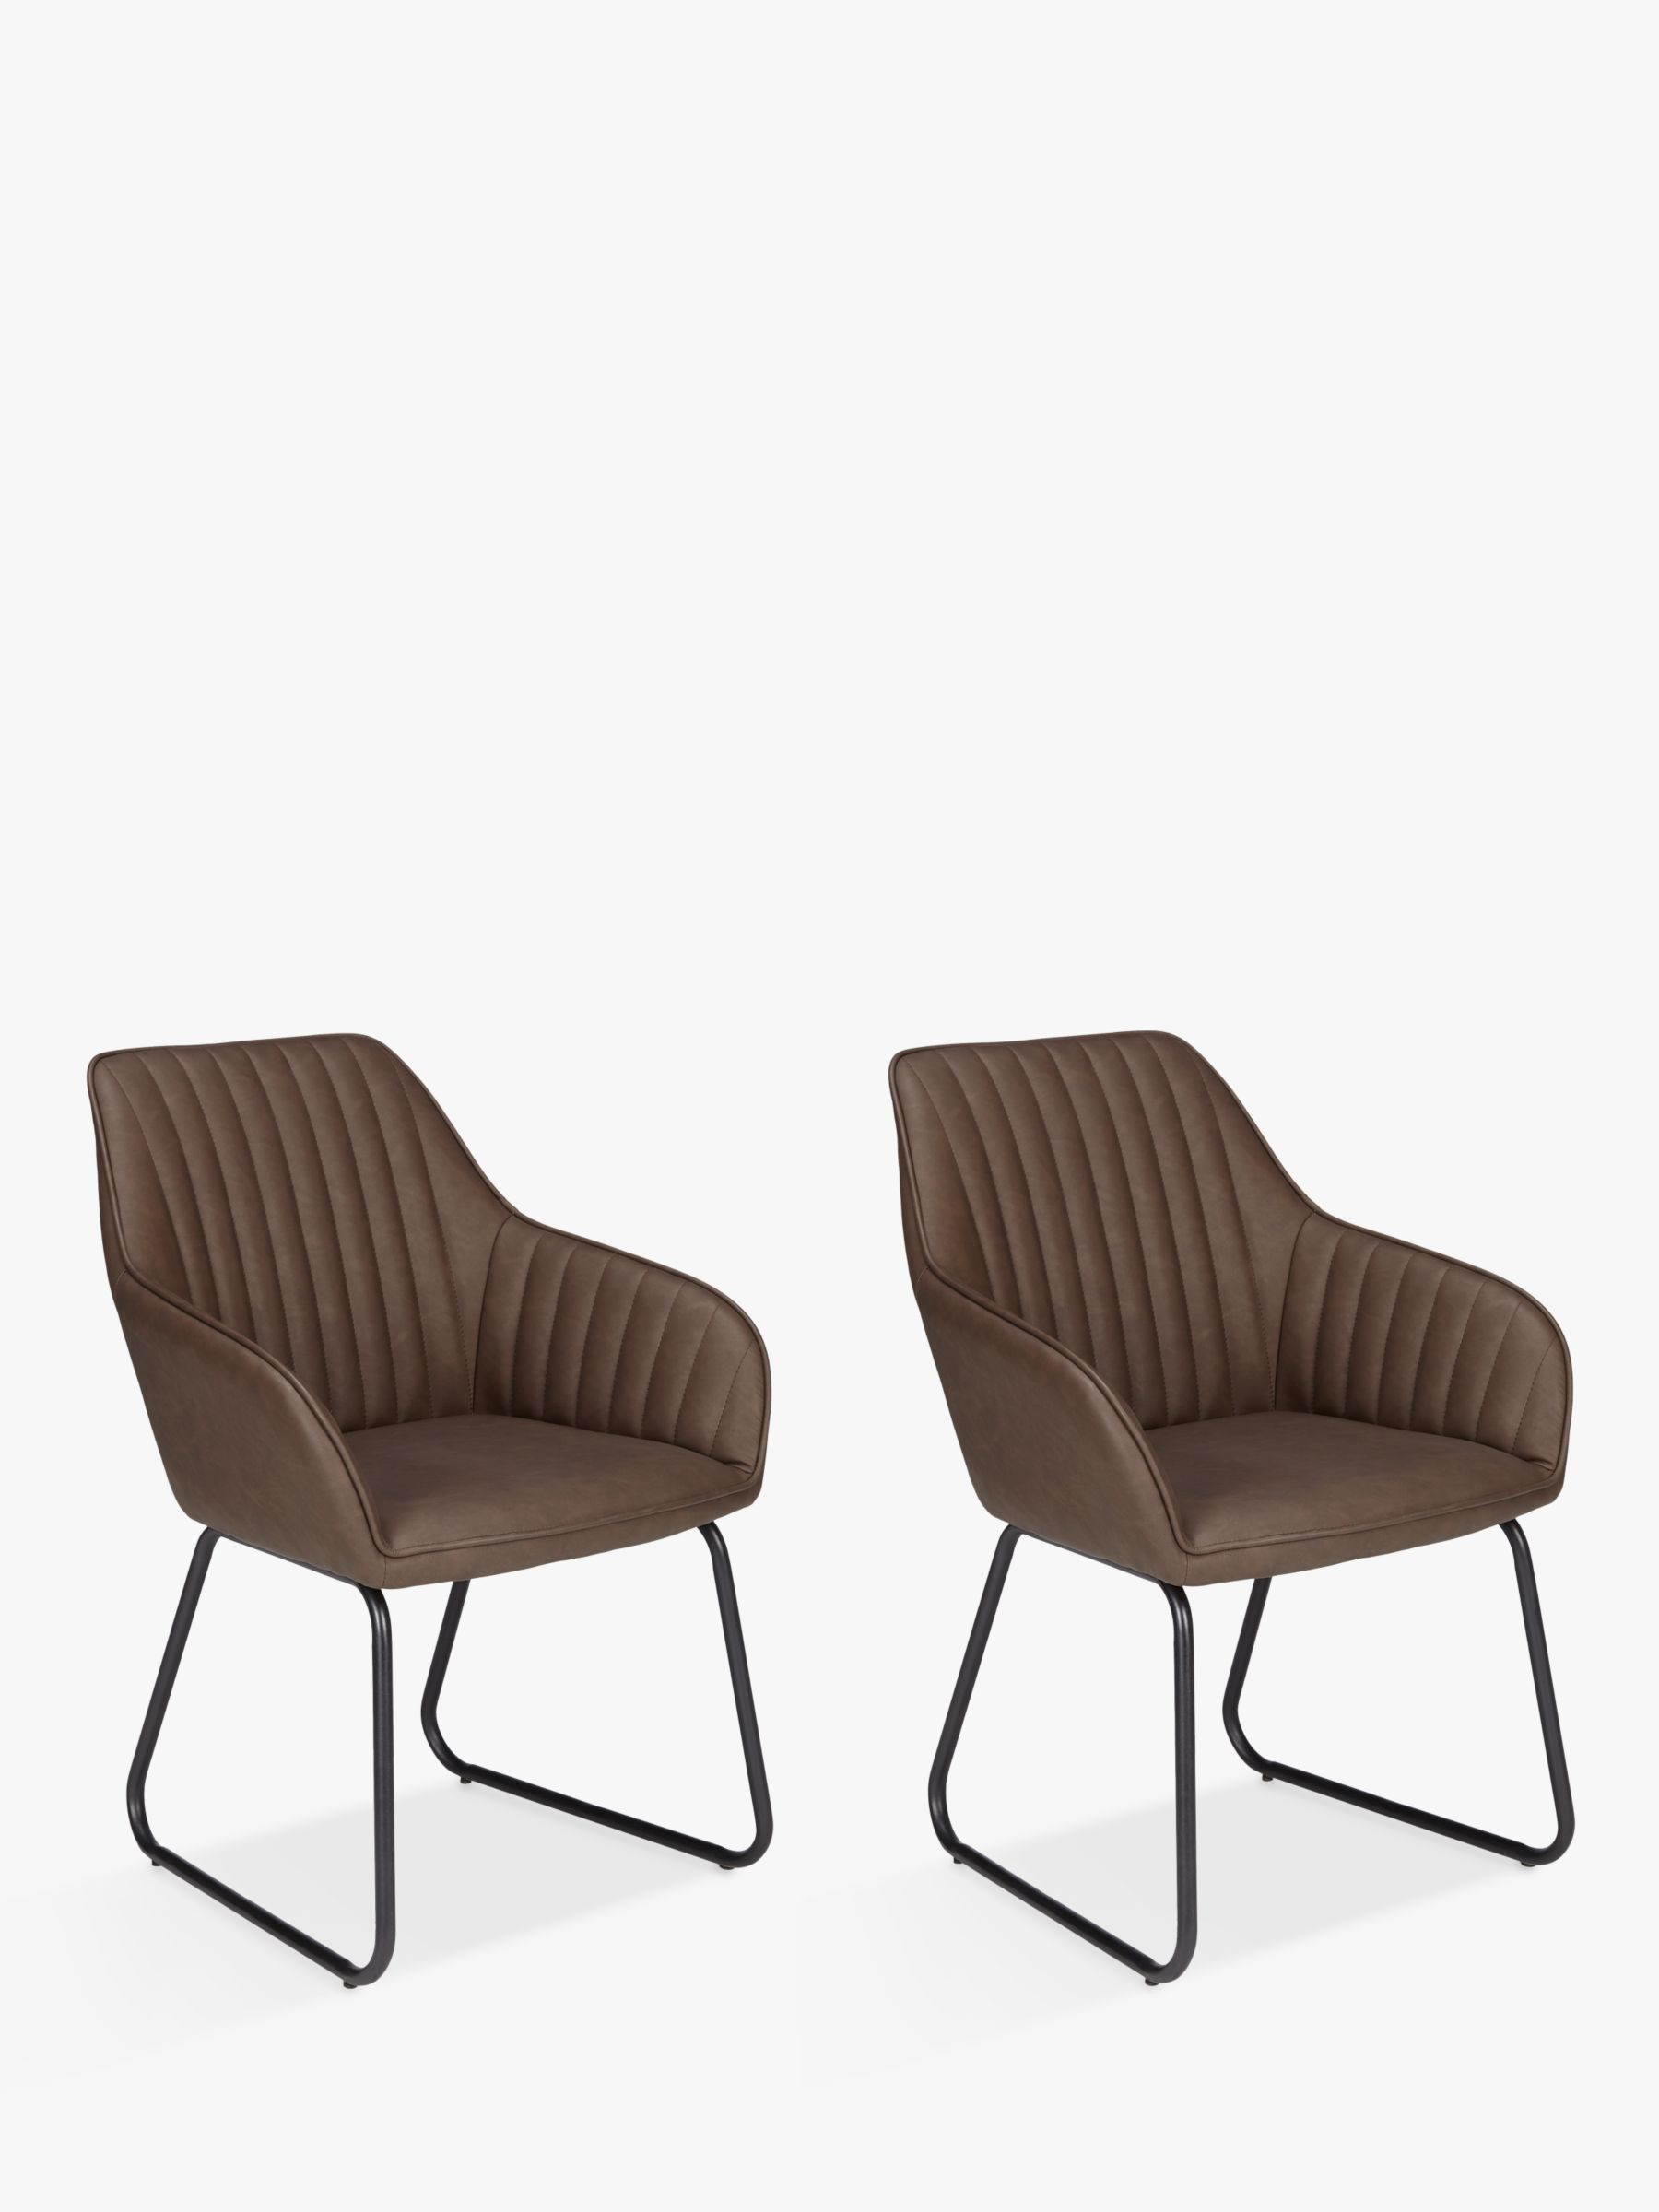 John Lewis & Partners Brooks Dining Armchairs, Set of 9, Antique Brown